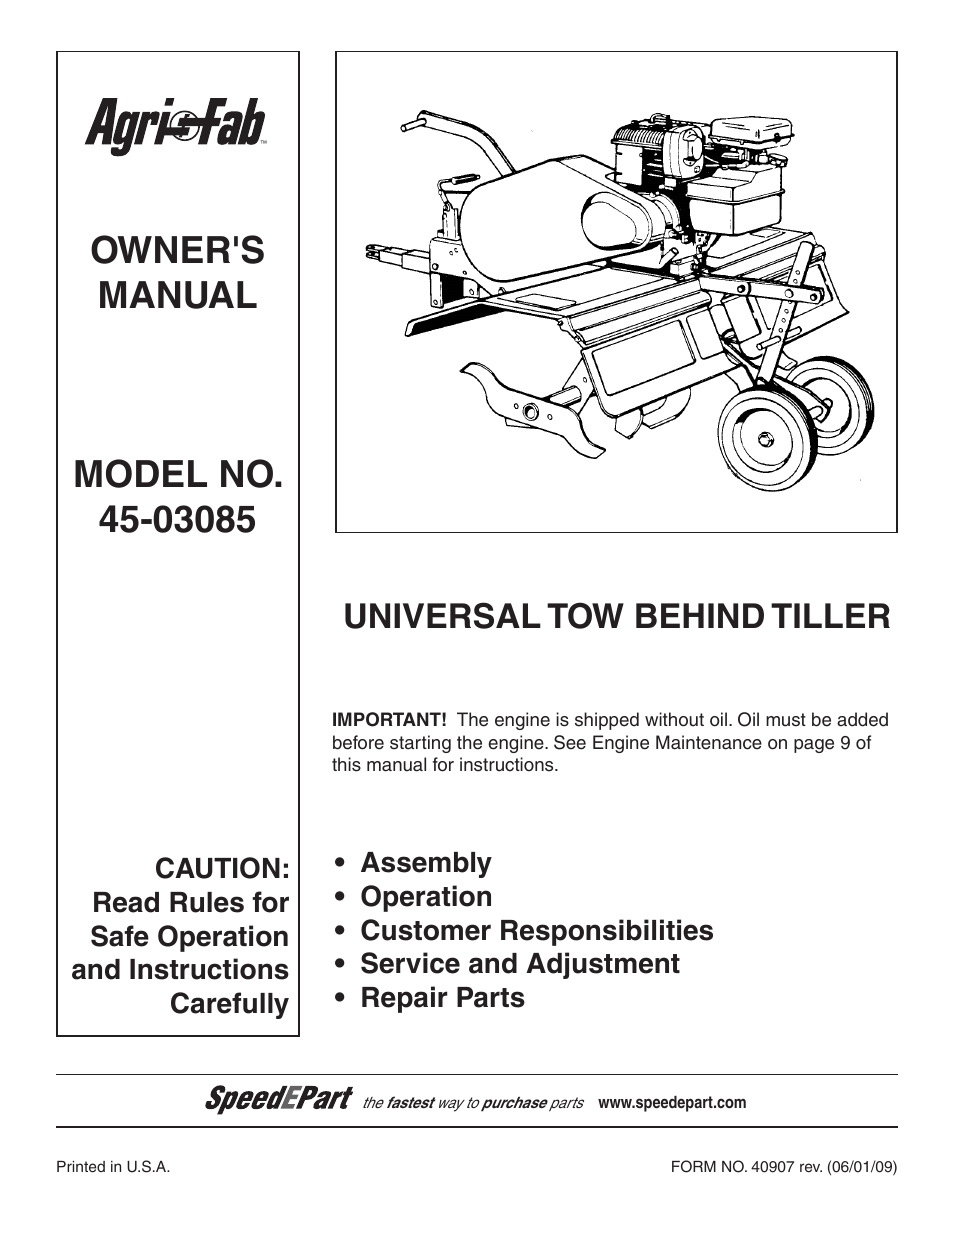 Agri-fab 45-03083 user manual | 20 pages.